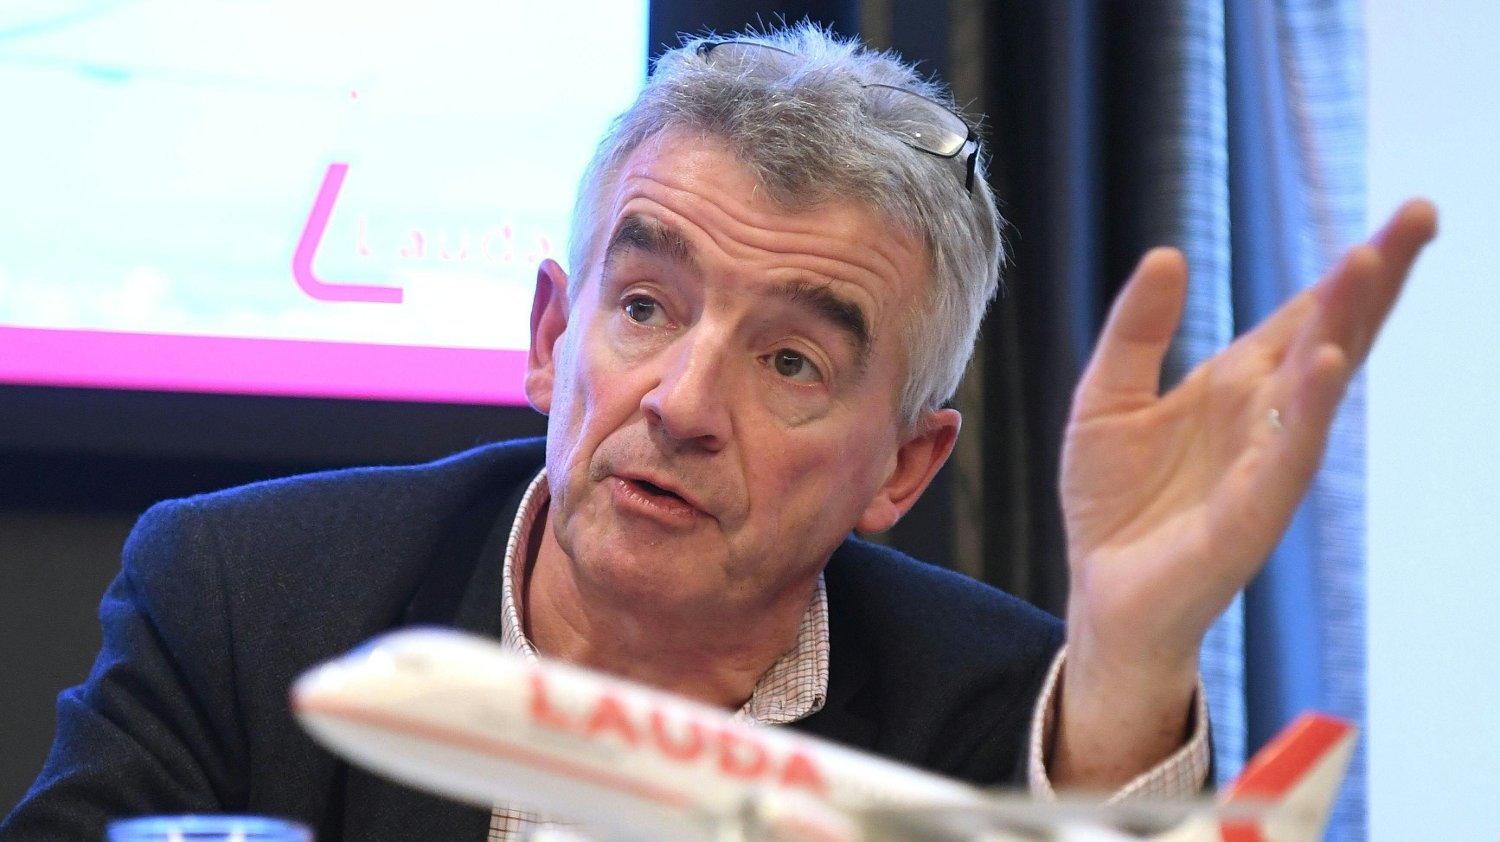 The CEO of Irish low-cost airline Ryanair Michael O'Leary gives a press conference with the Austrian low-cost airline Lauda to present among others new destinations from Austria, the summer flight plan 2020 and the extension of the fleet, on September 26, 2019 in Vienna. / Austria OUT